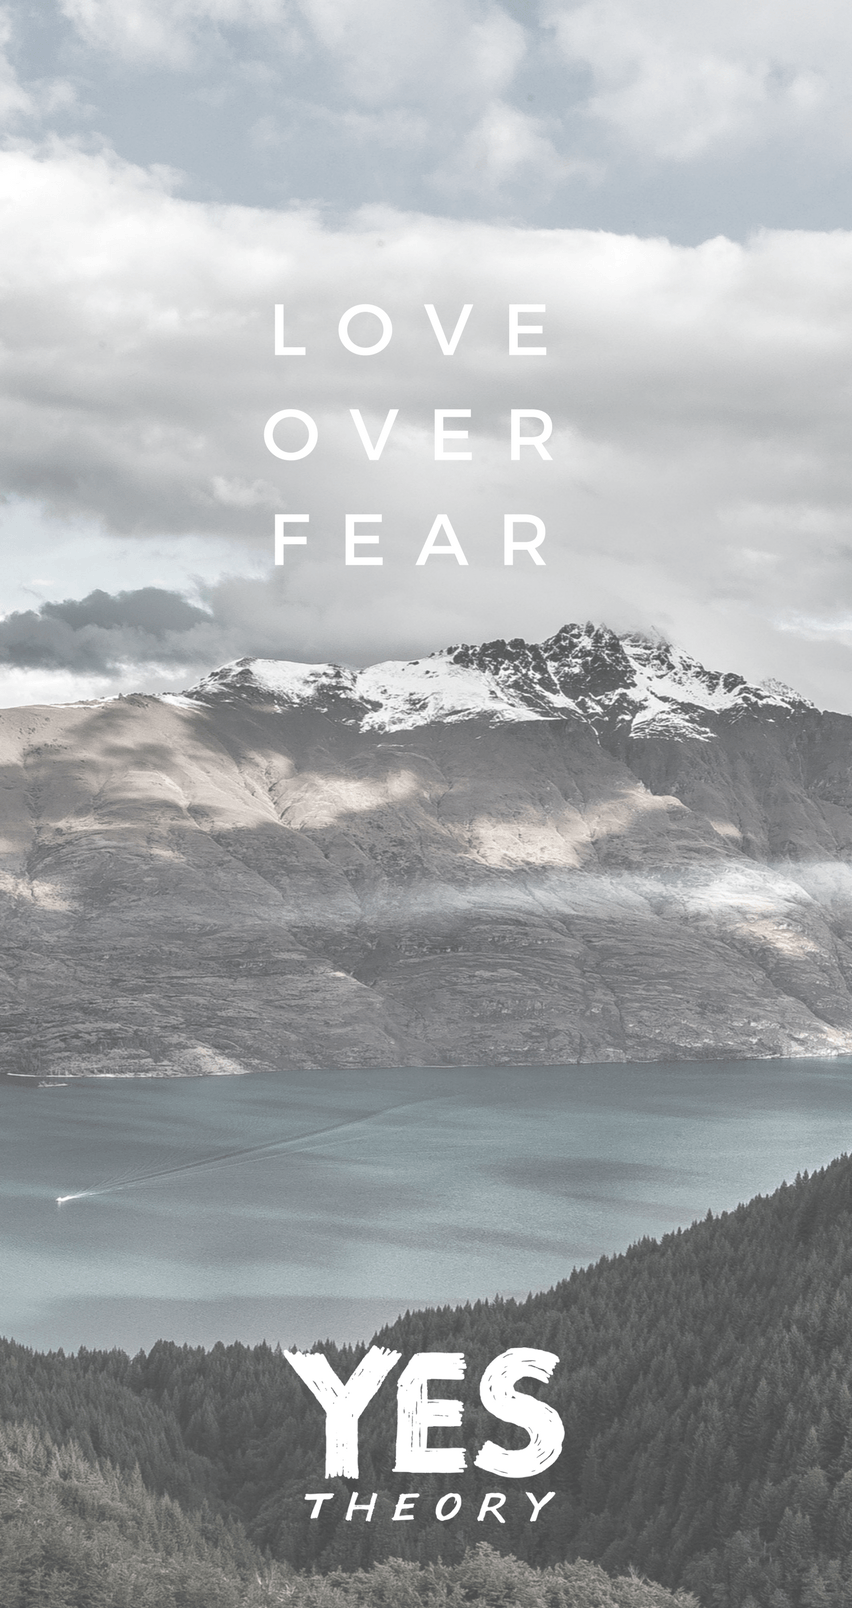 Bible Quotes Hd Wallpapers For Laptop Yes Theory Love Over Fear Phone Wallpaper Iphone